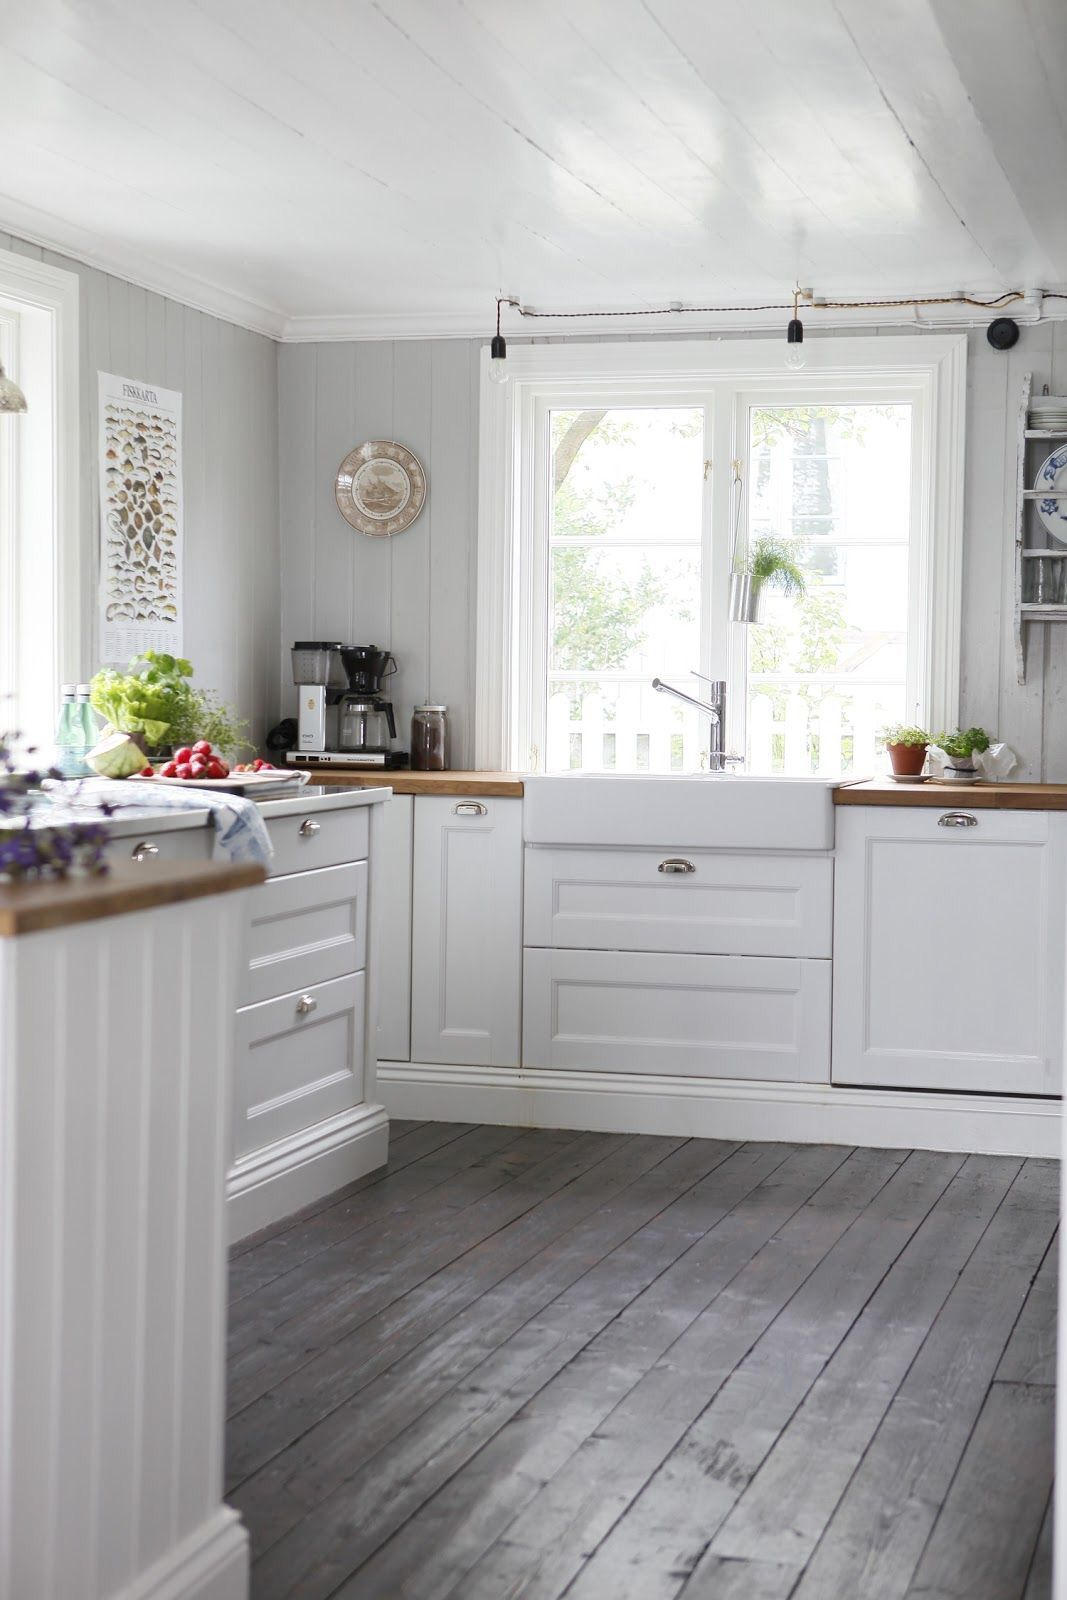 Pin by 1 3237470664 on my dream home Grey kitchen